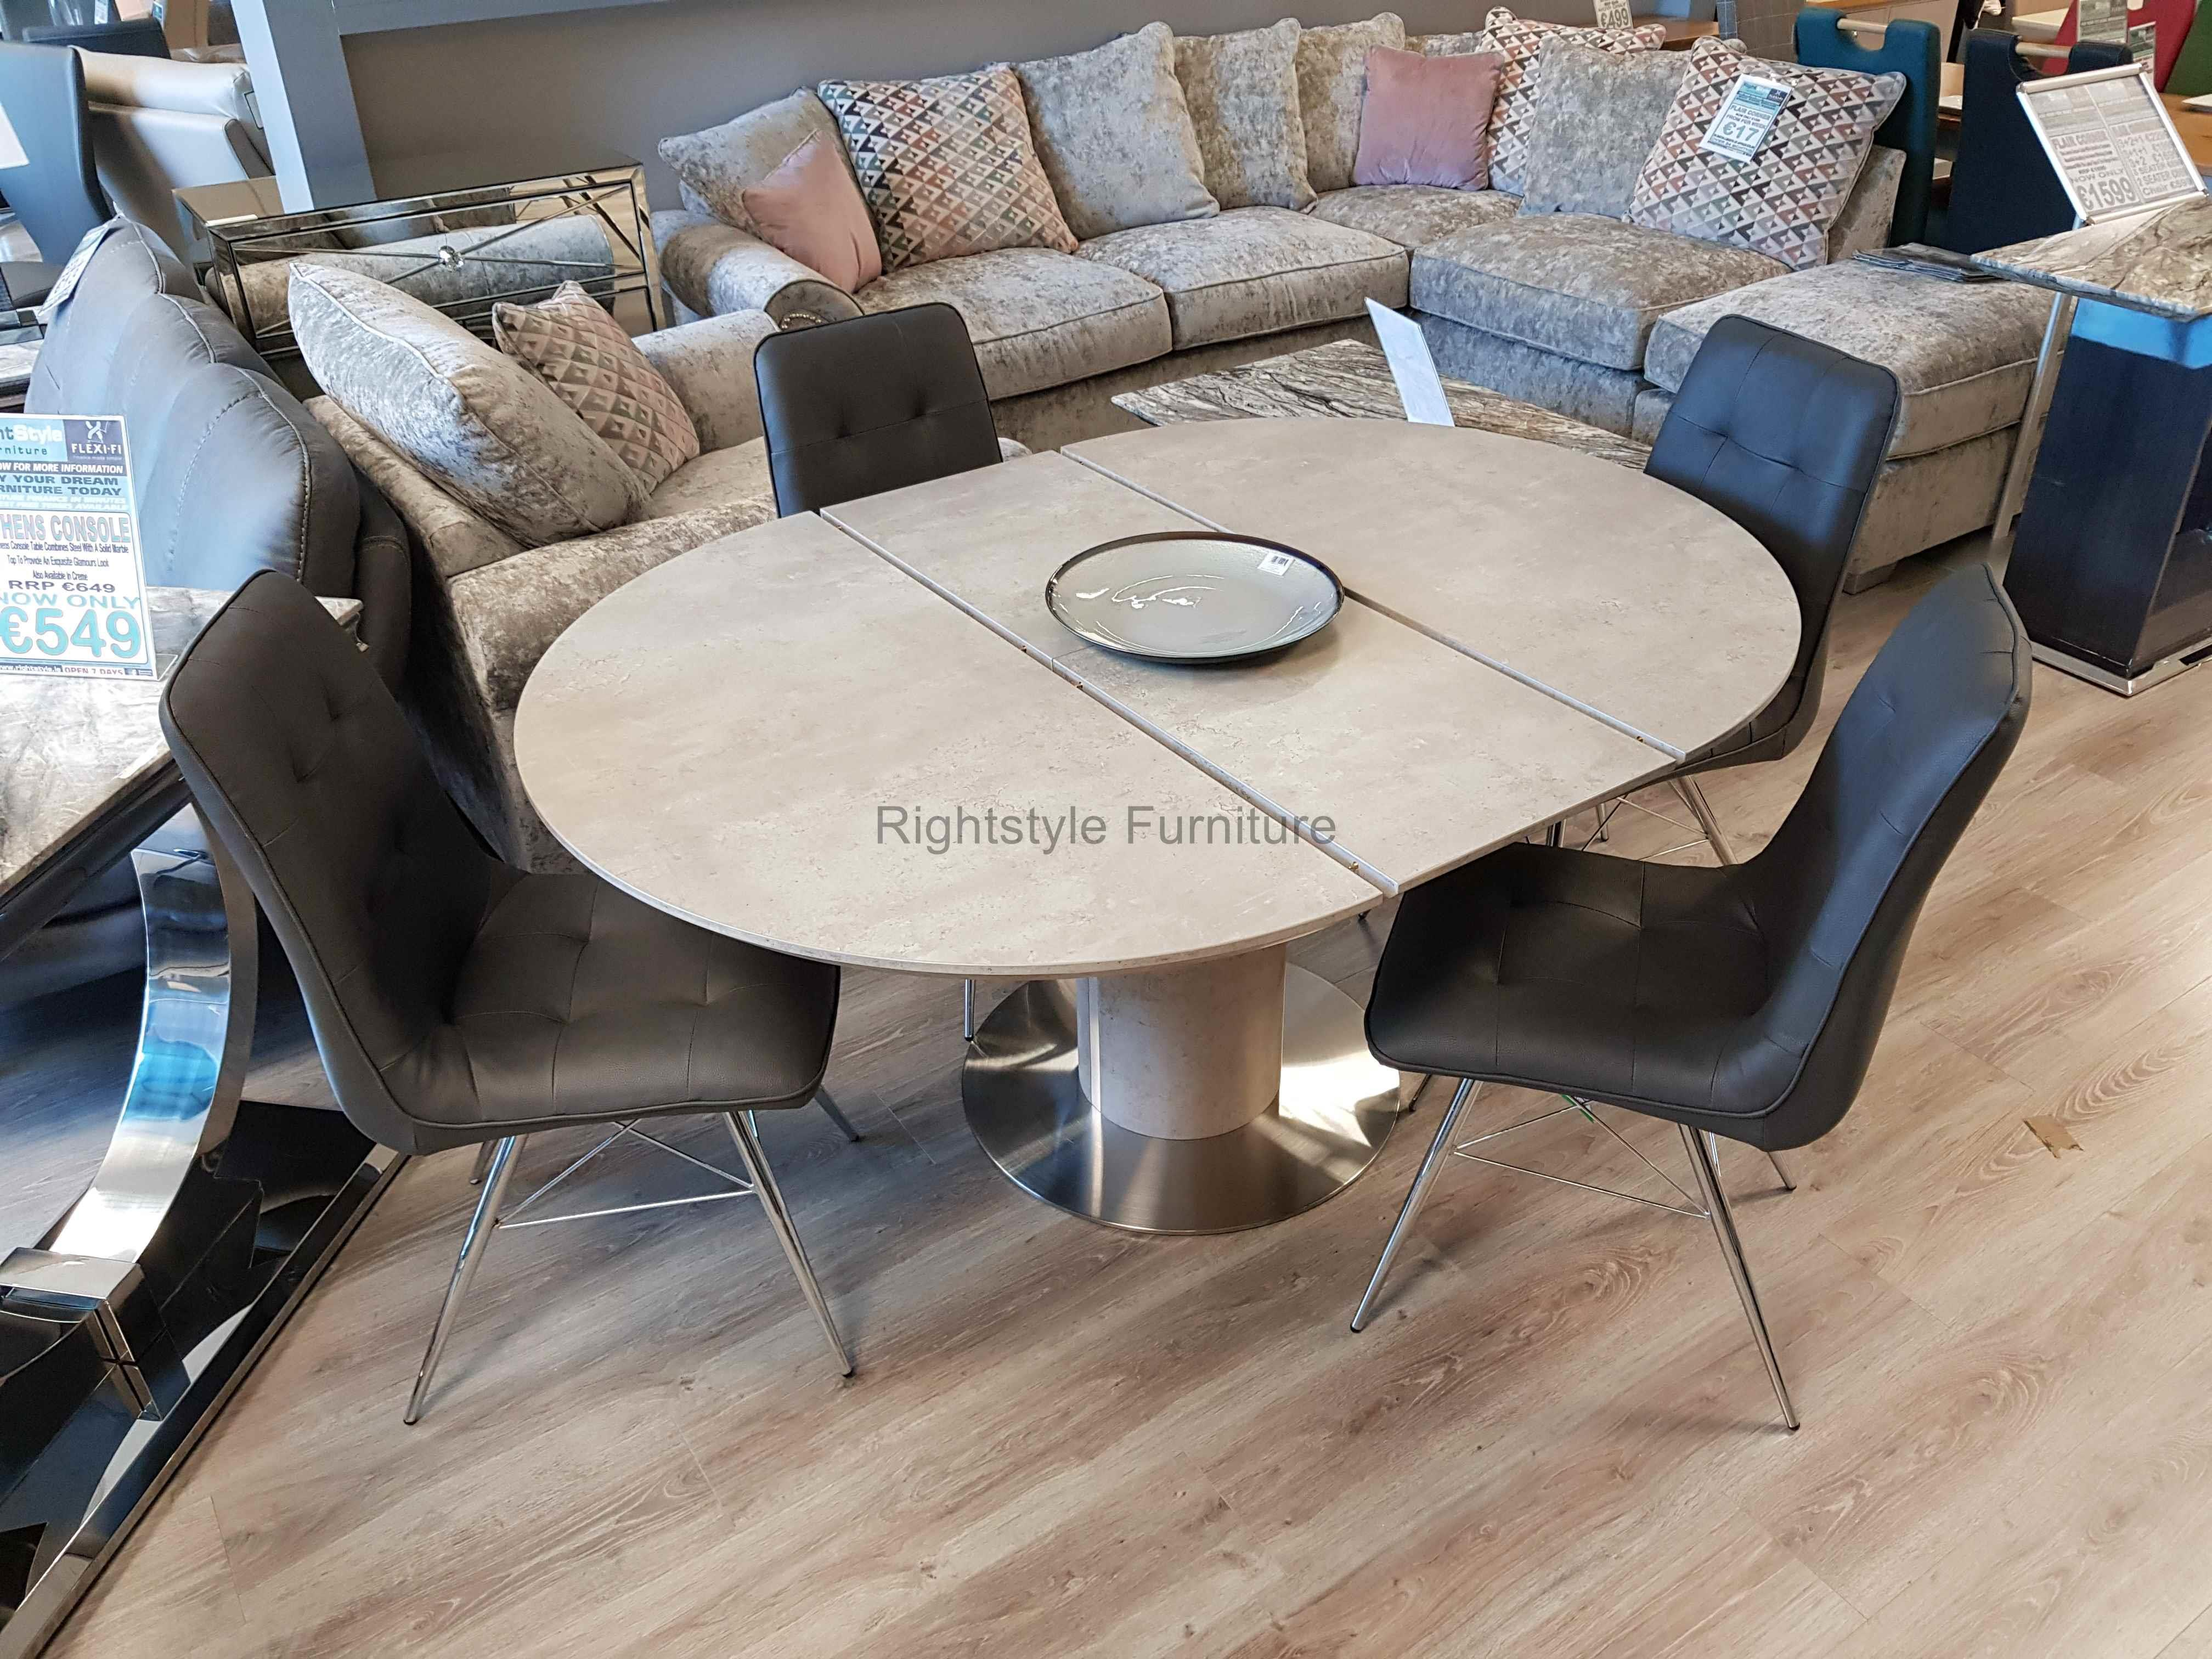 Round Dining Table Set Concrete Effect Dublin Ireland Furniture Store Rightstyle